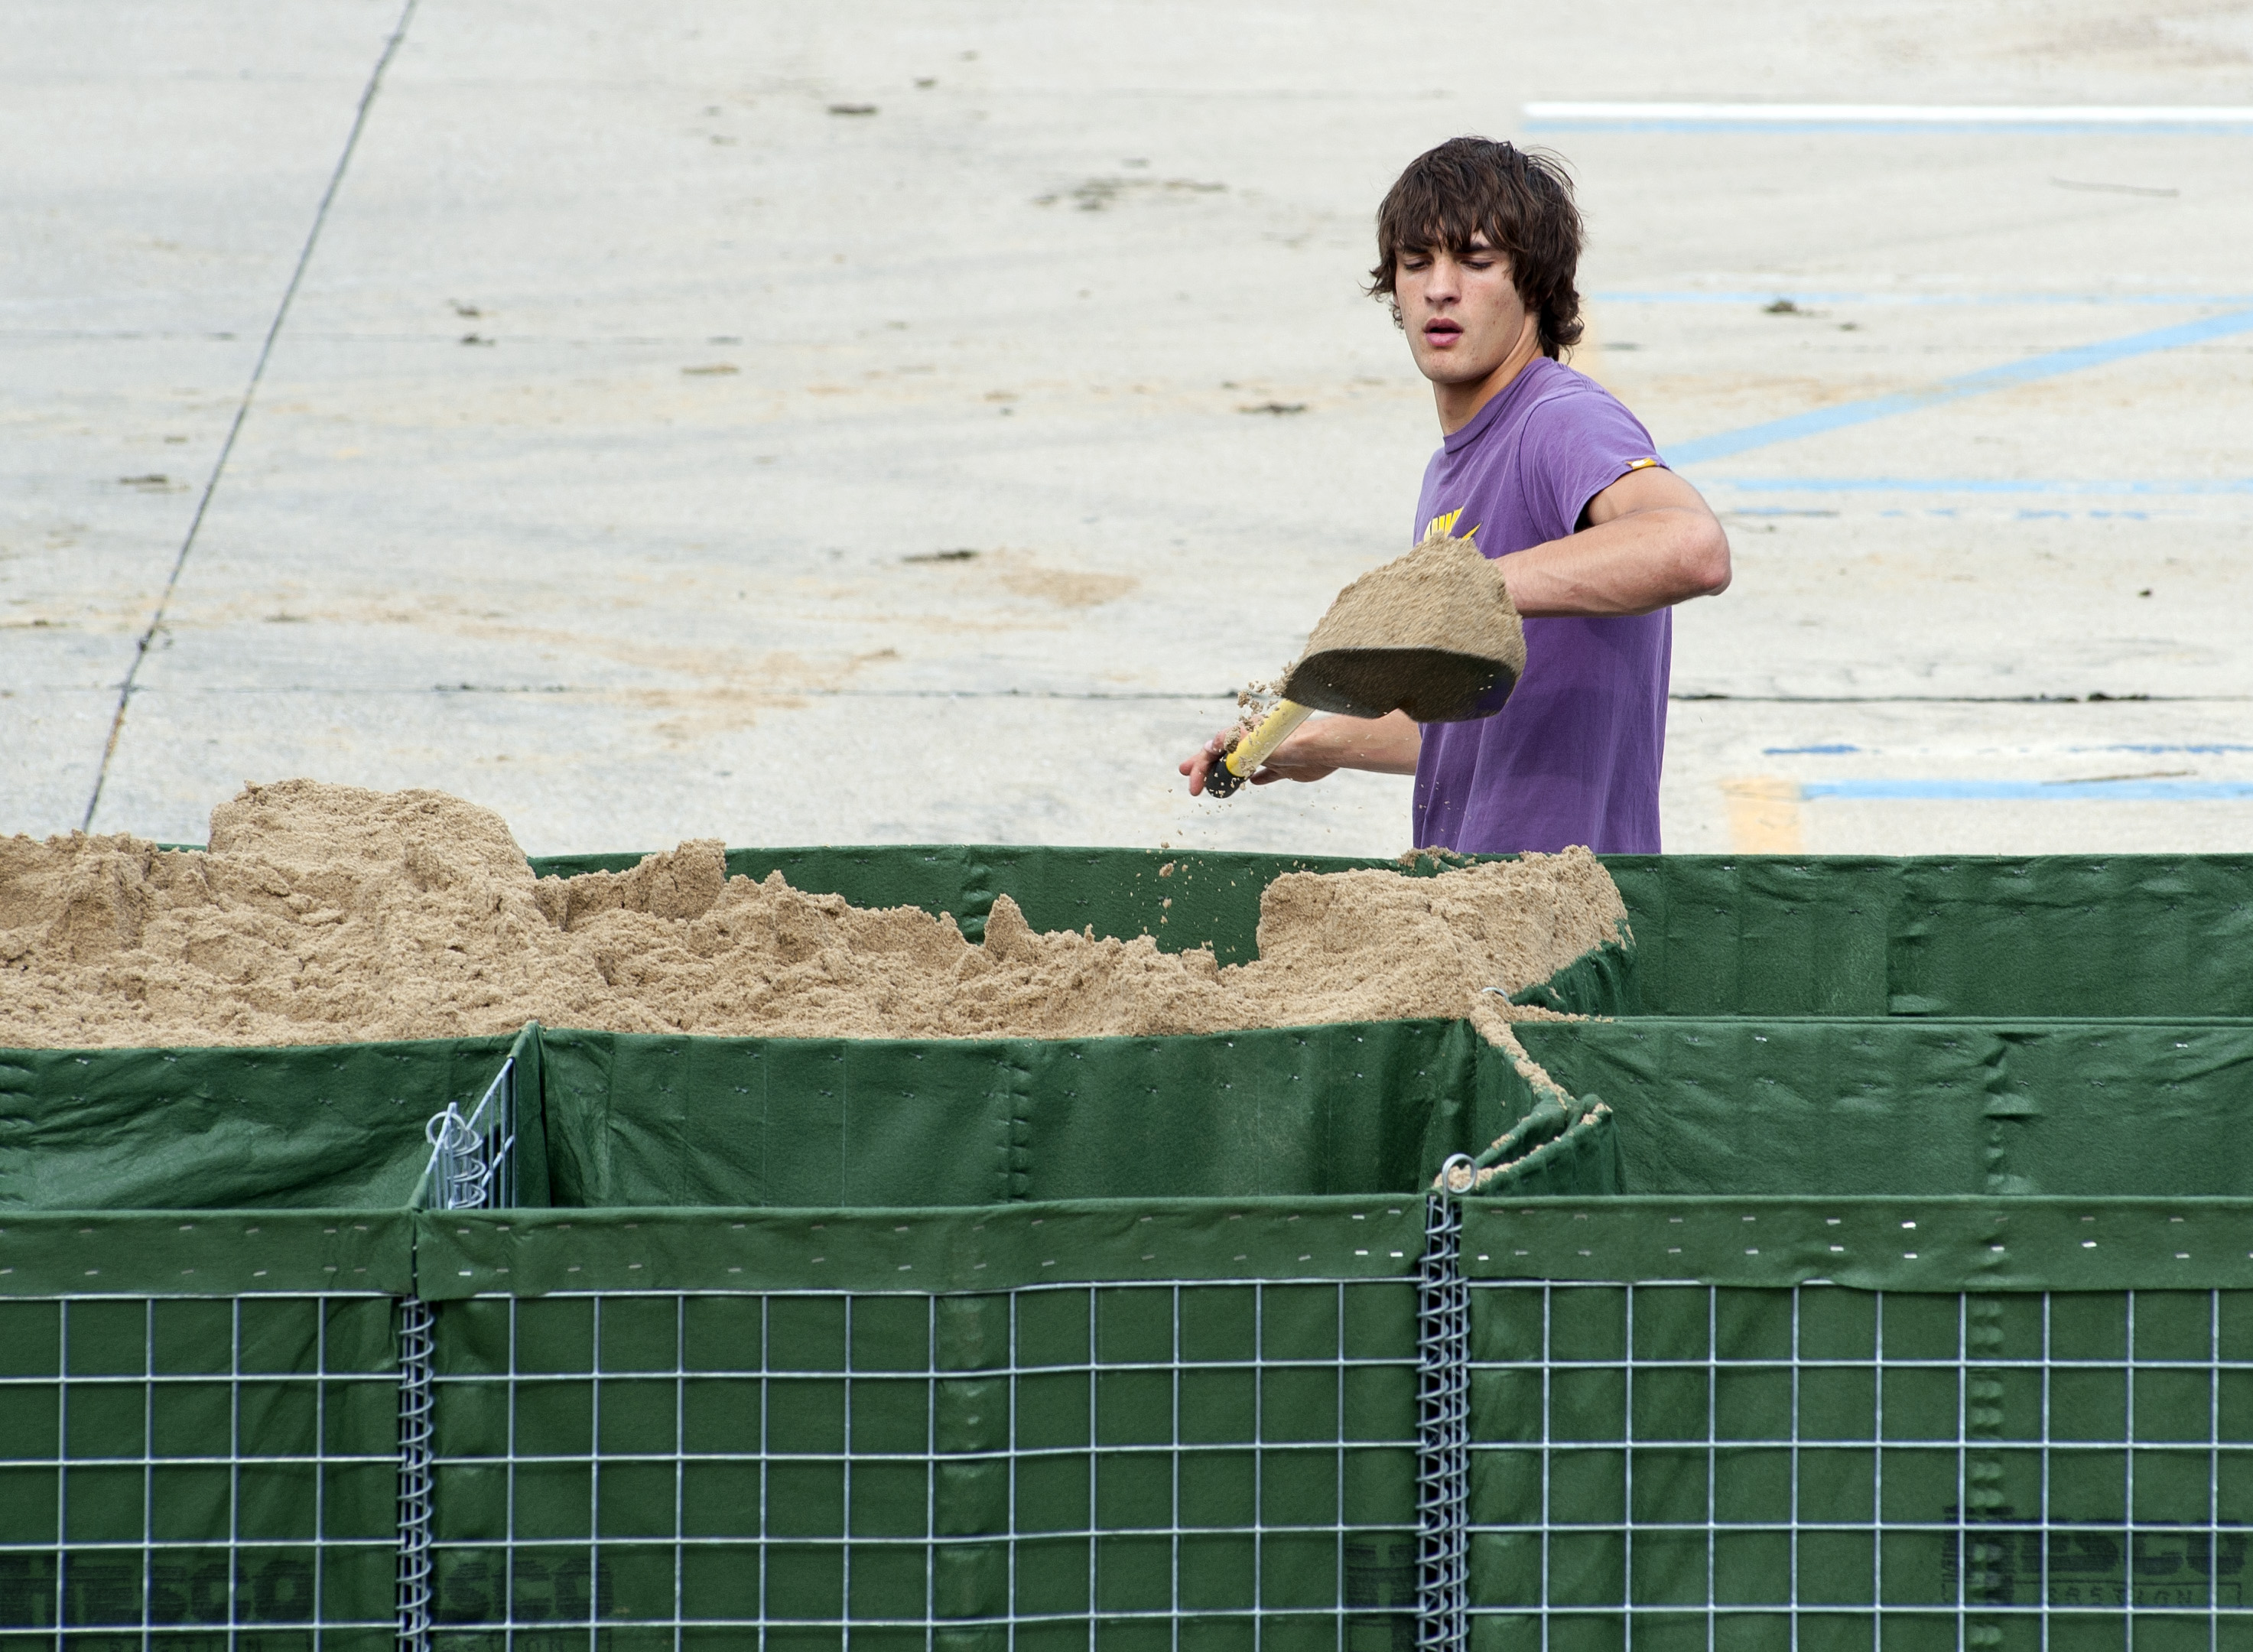 A student volunteer helps fill a HESCO barrier with sand.